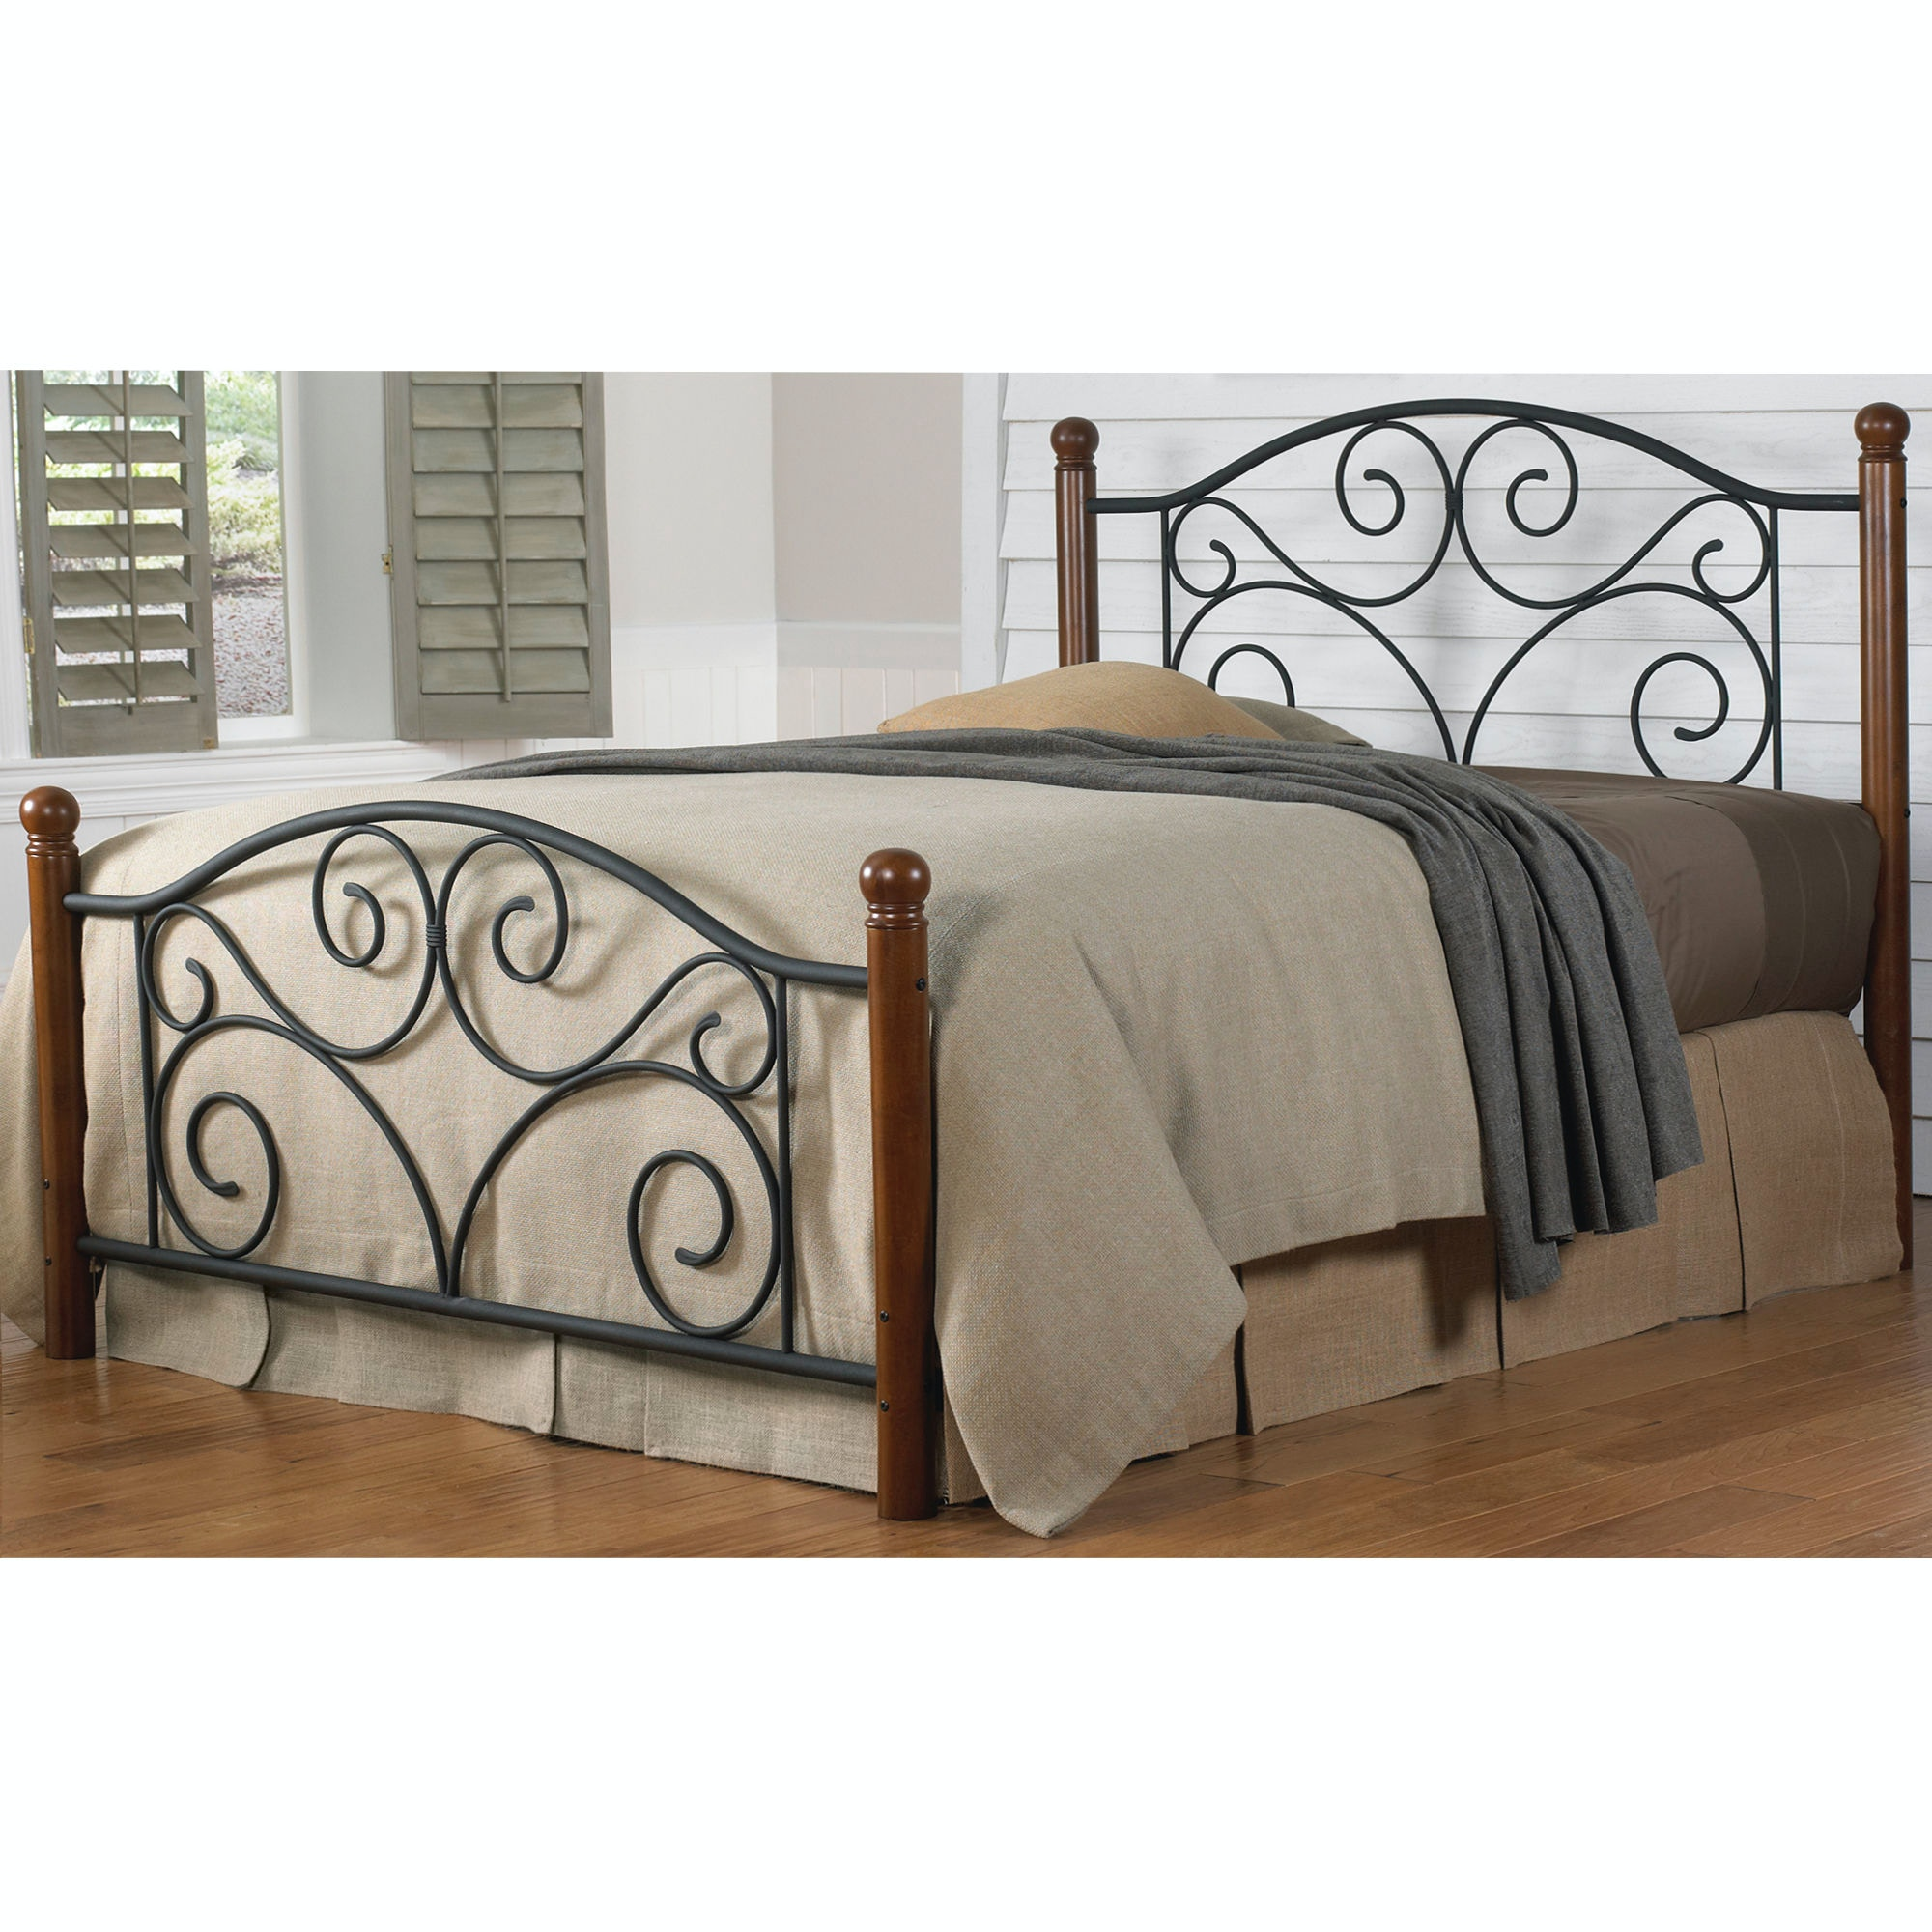 Fashion Bed Group Doral Complete Bed With Metal Duo Panels And Dark Walnut  Wood Posts, ...